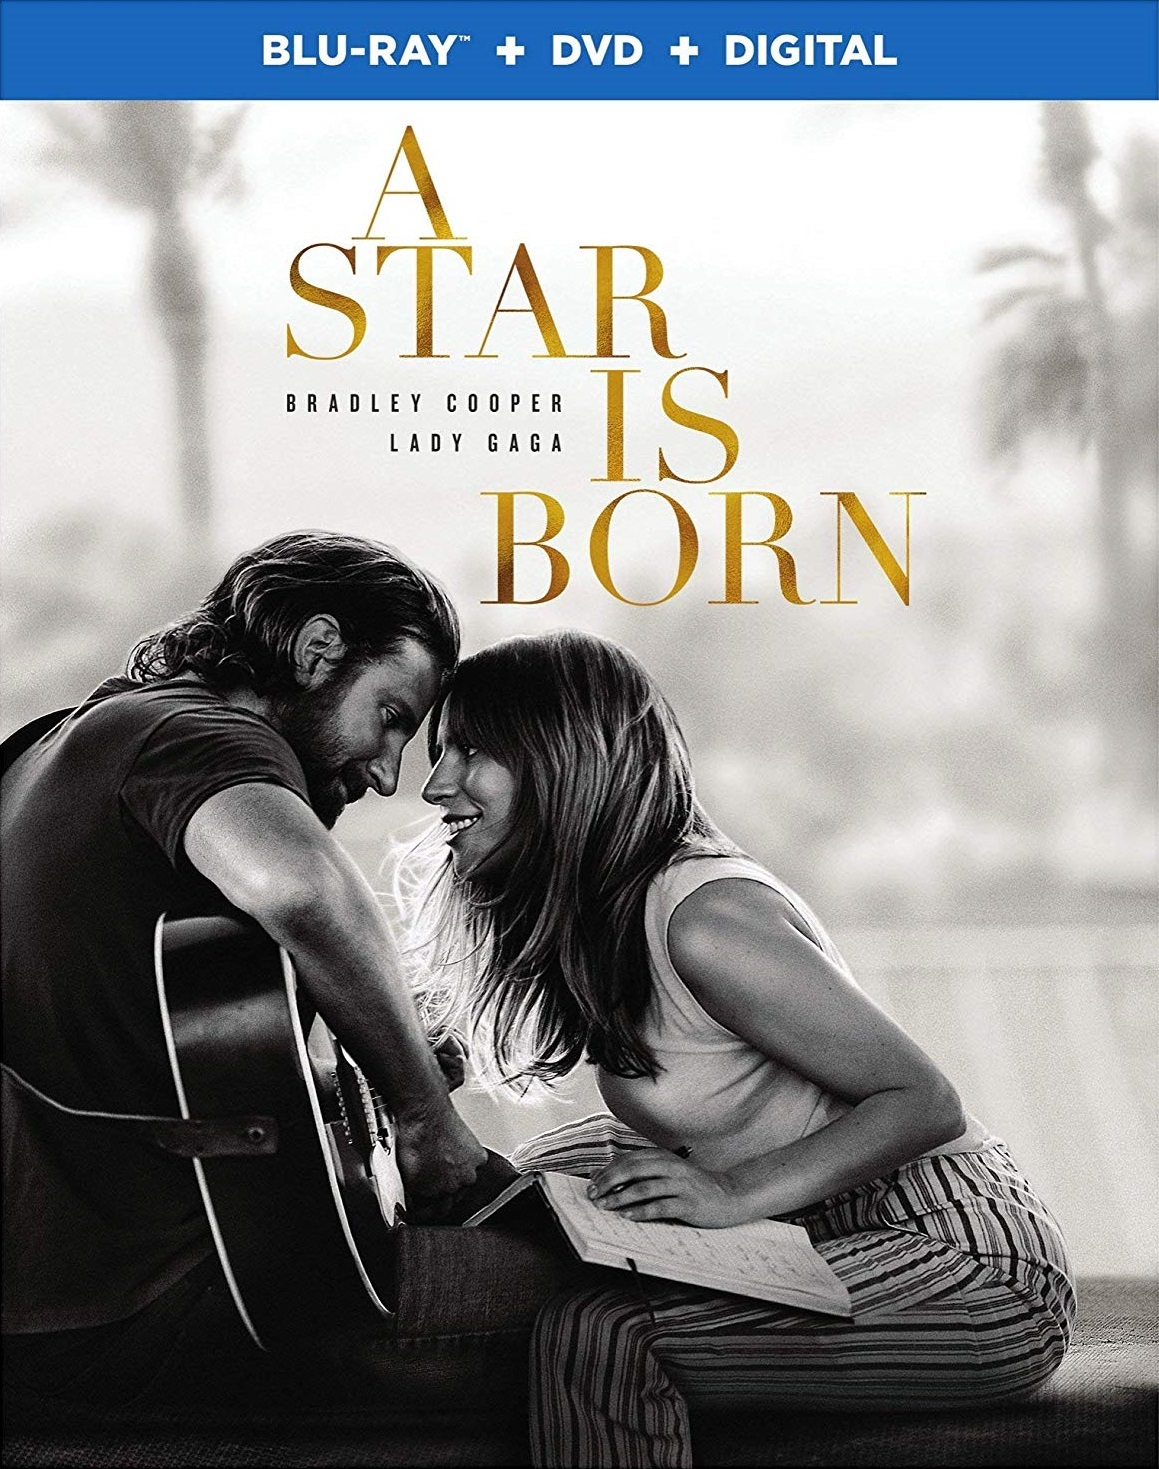 A Star Is Born (2018) poster image